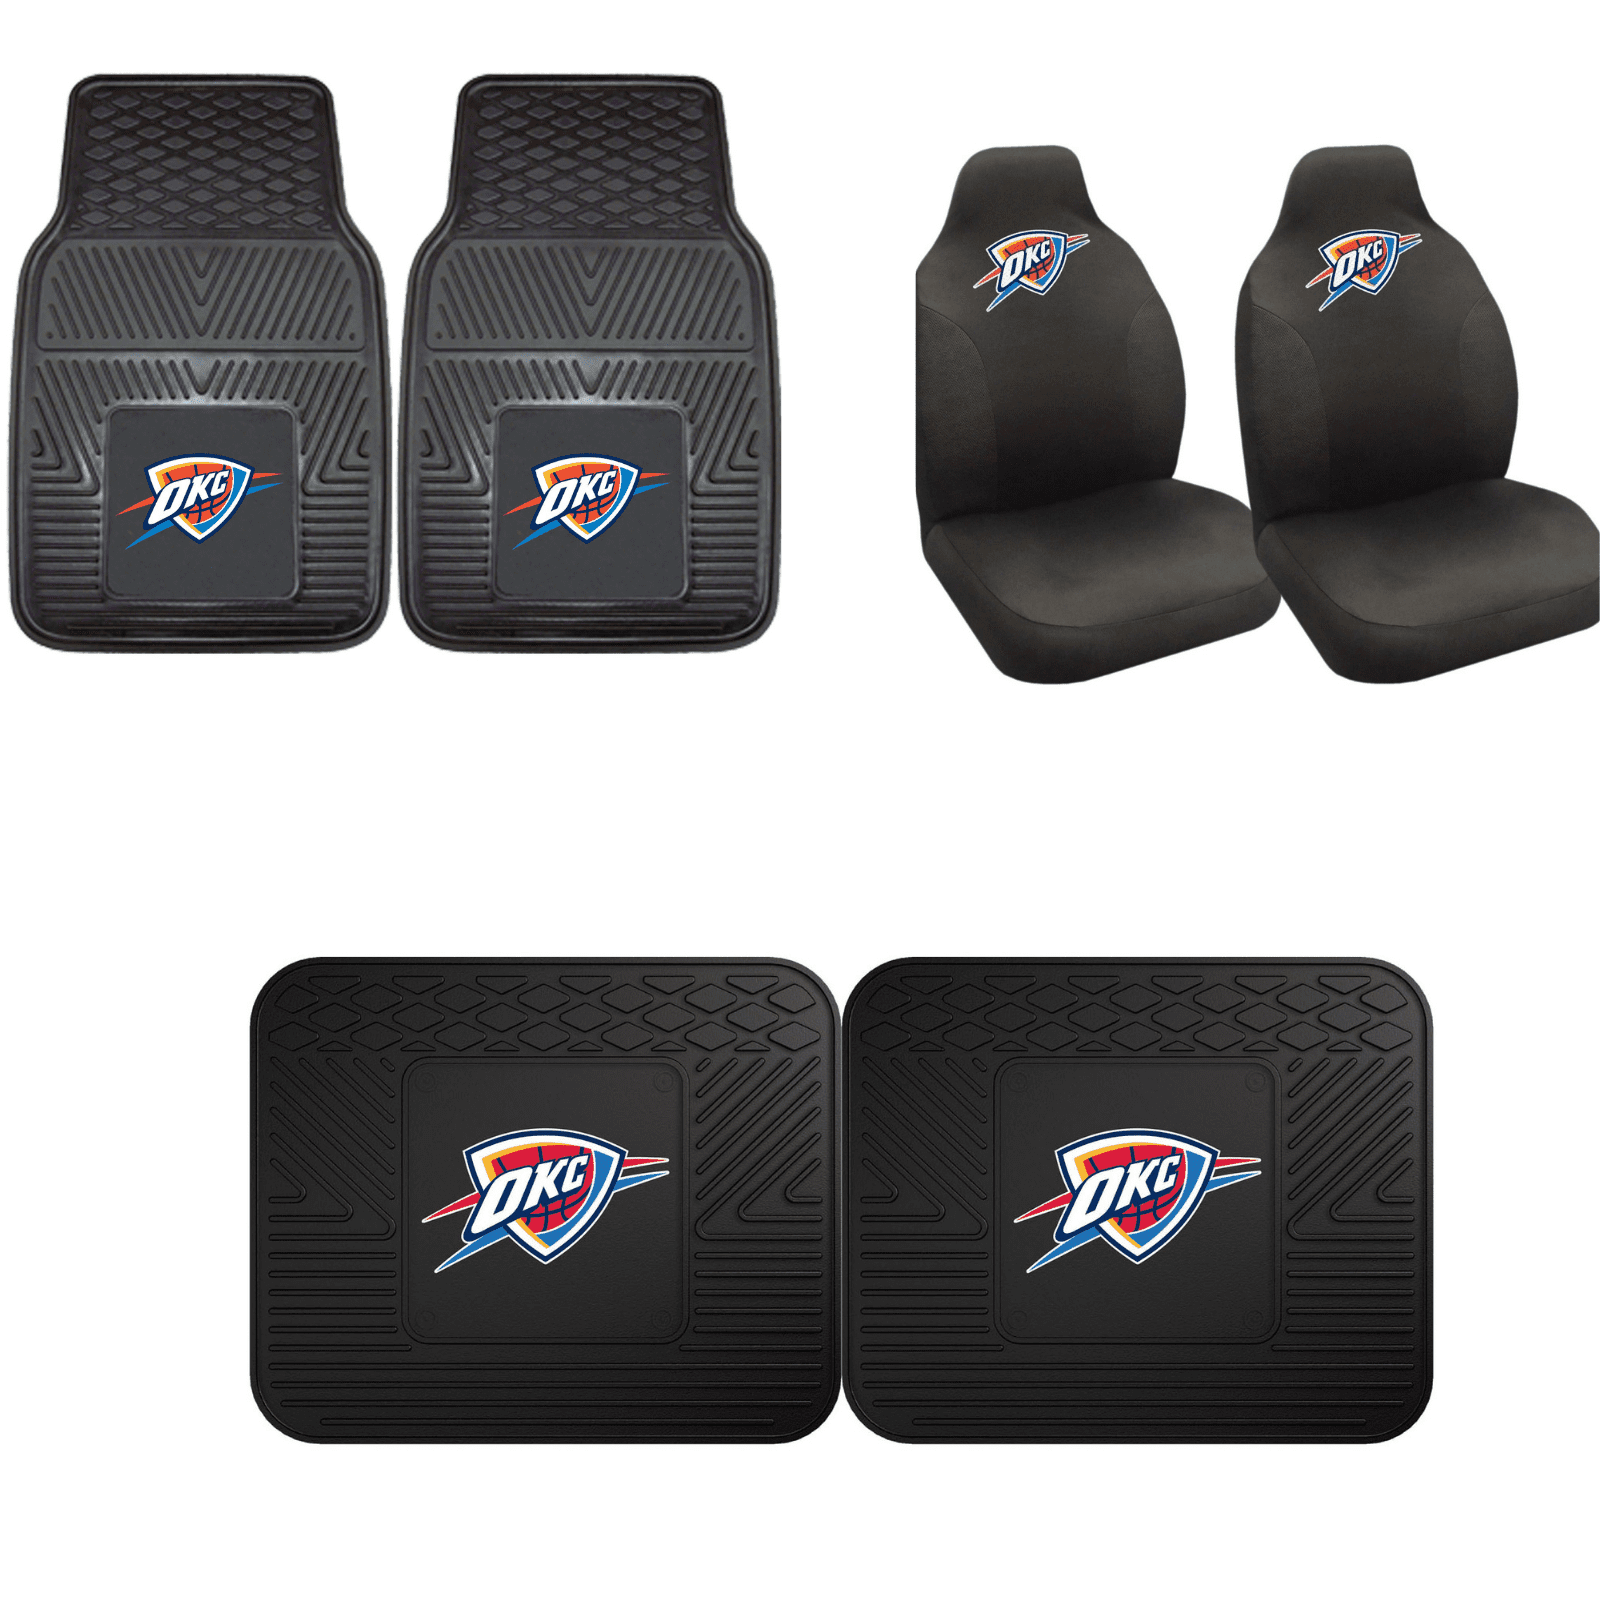 Oklahoma City Thunder Car Accessories, Car Mats & Seat Covers